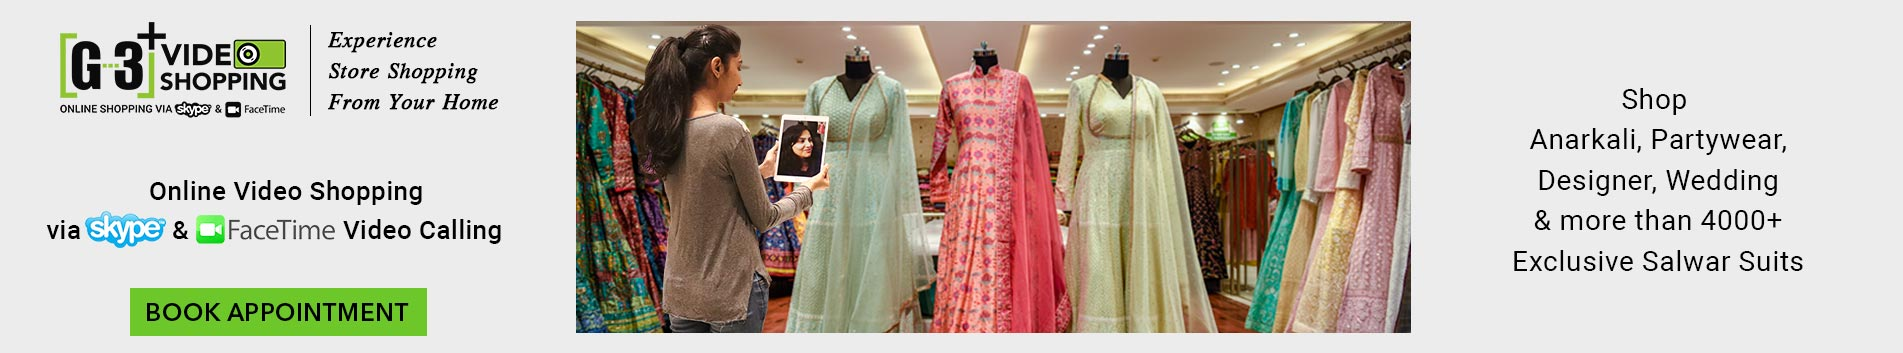 Reception Salwar Suits